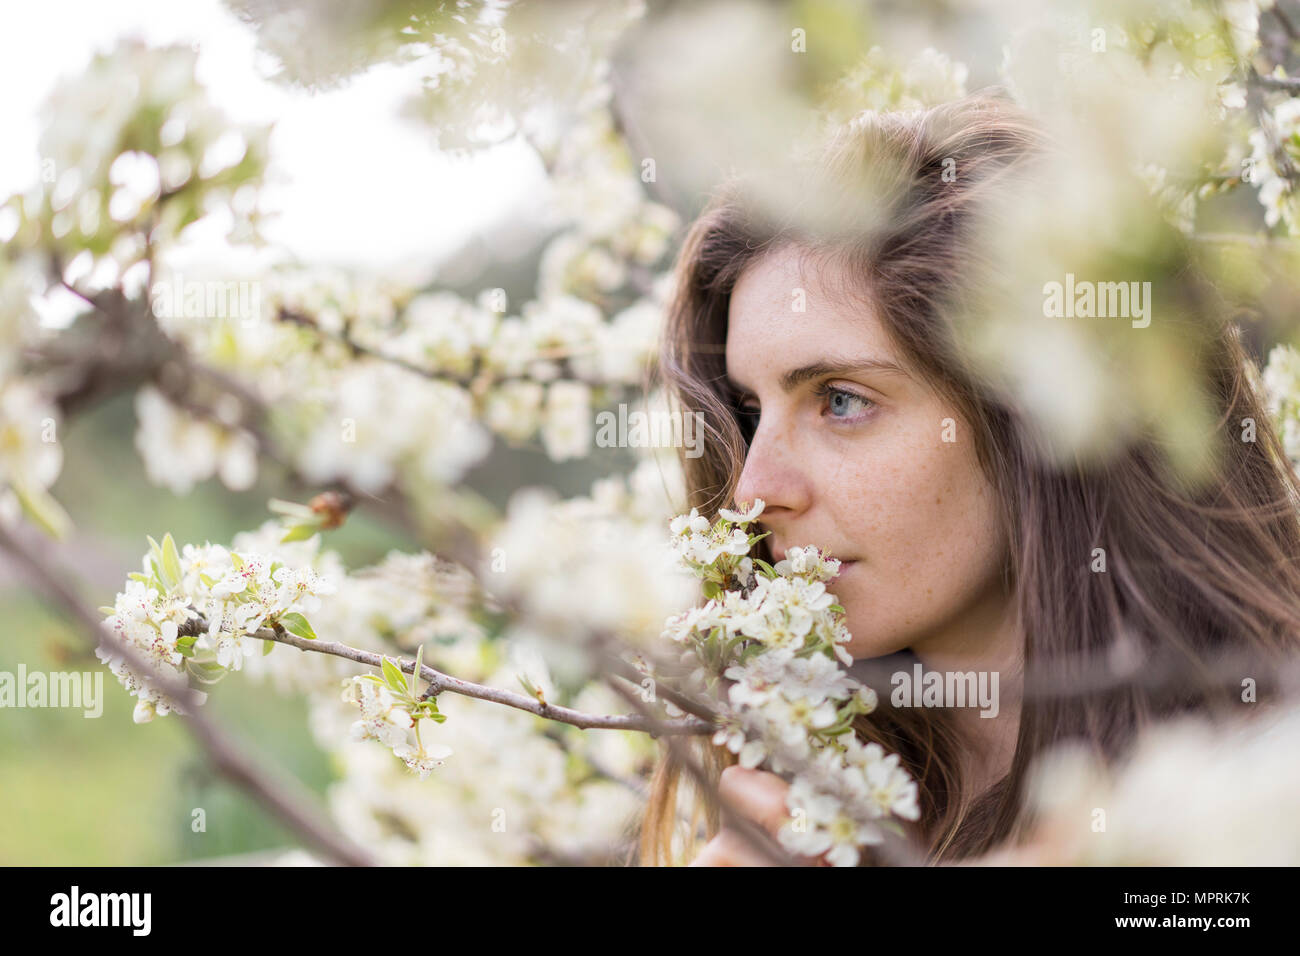 Woman smelling white blossoms of fruit tree - Stock Image